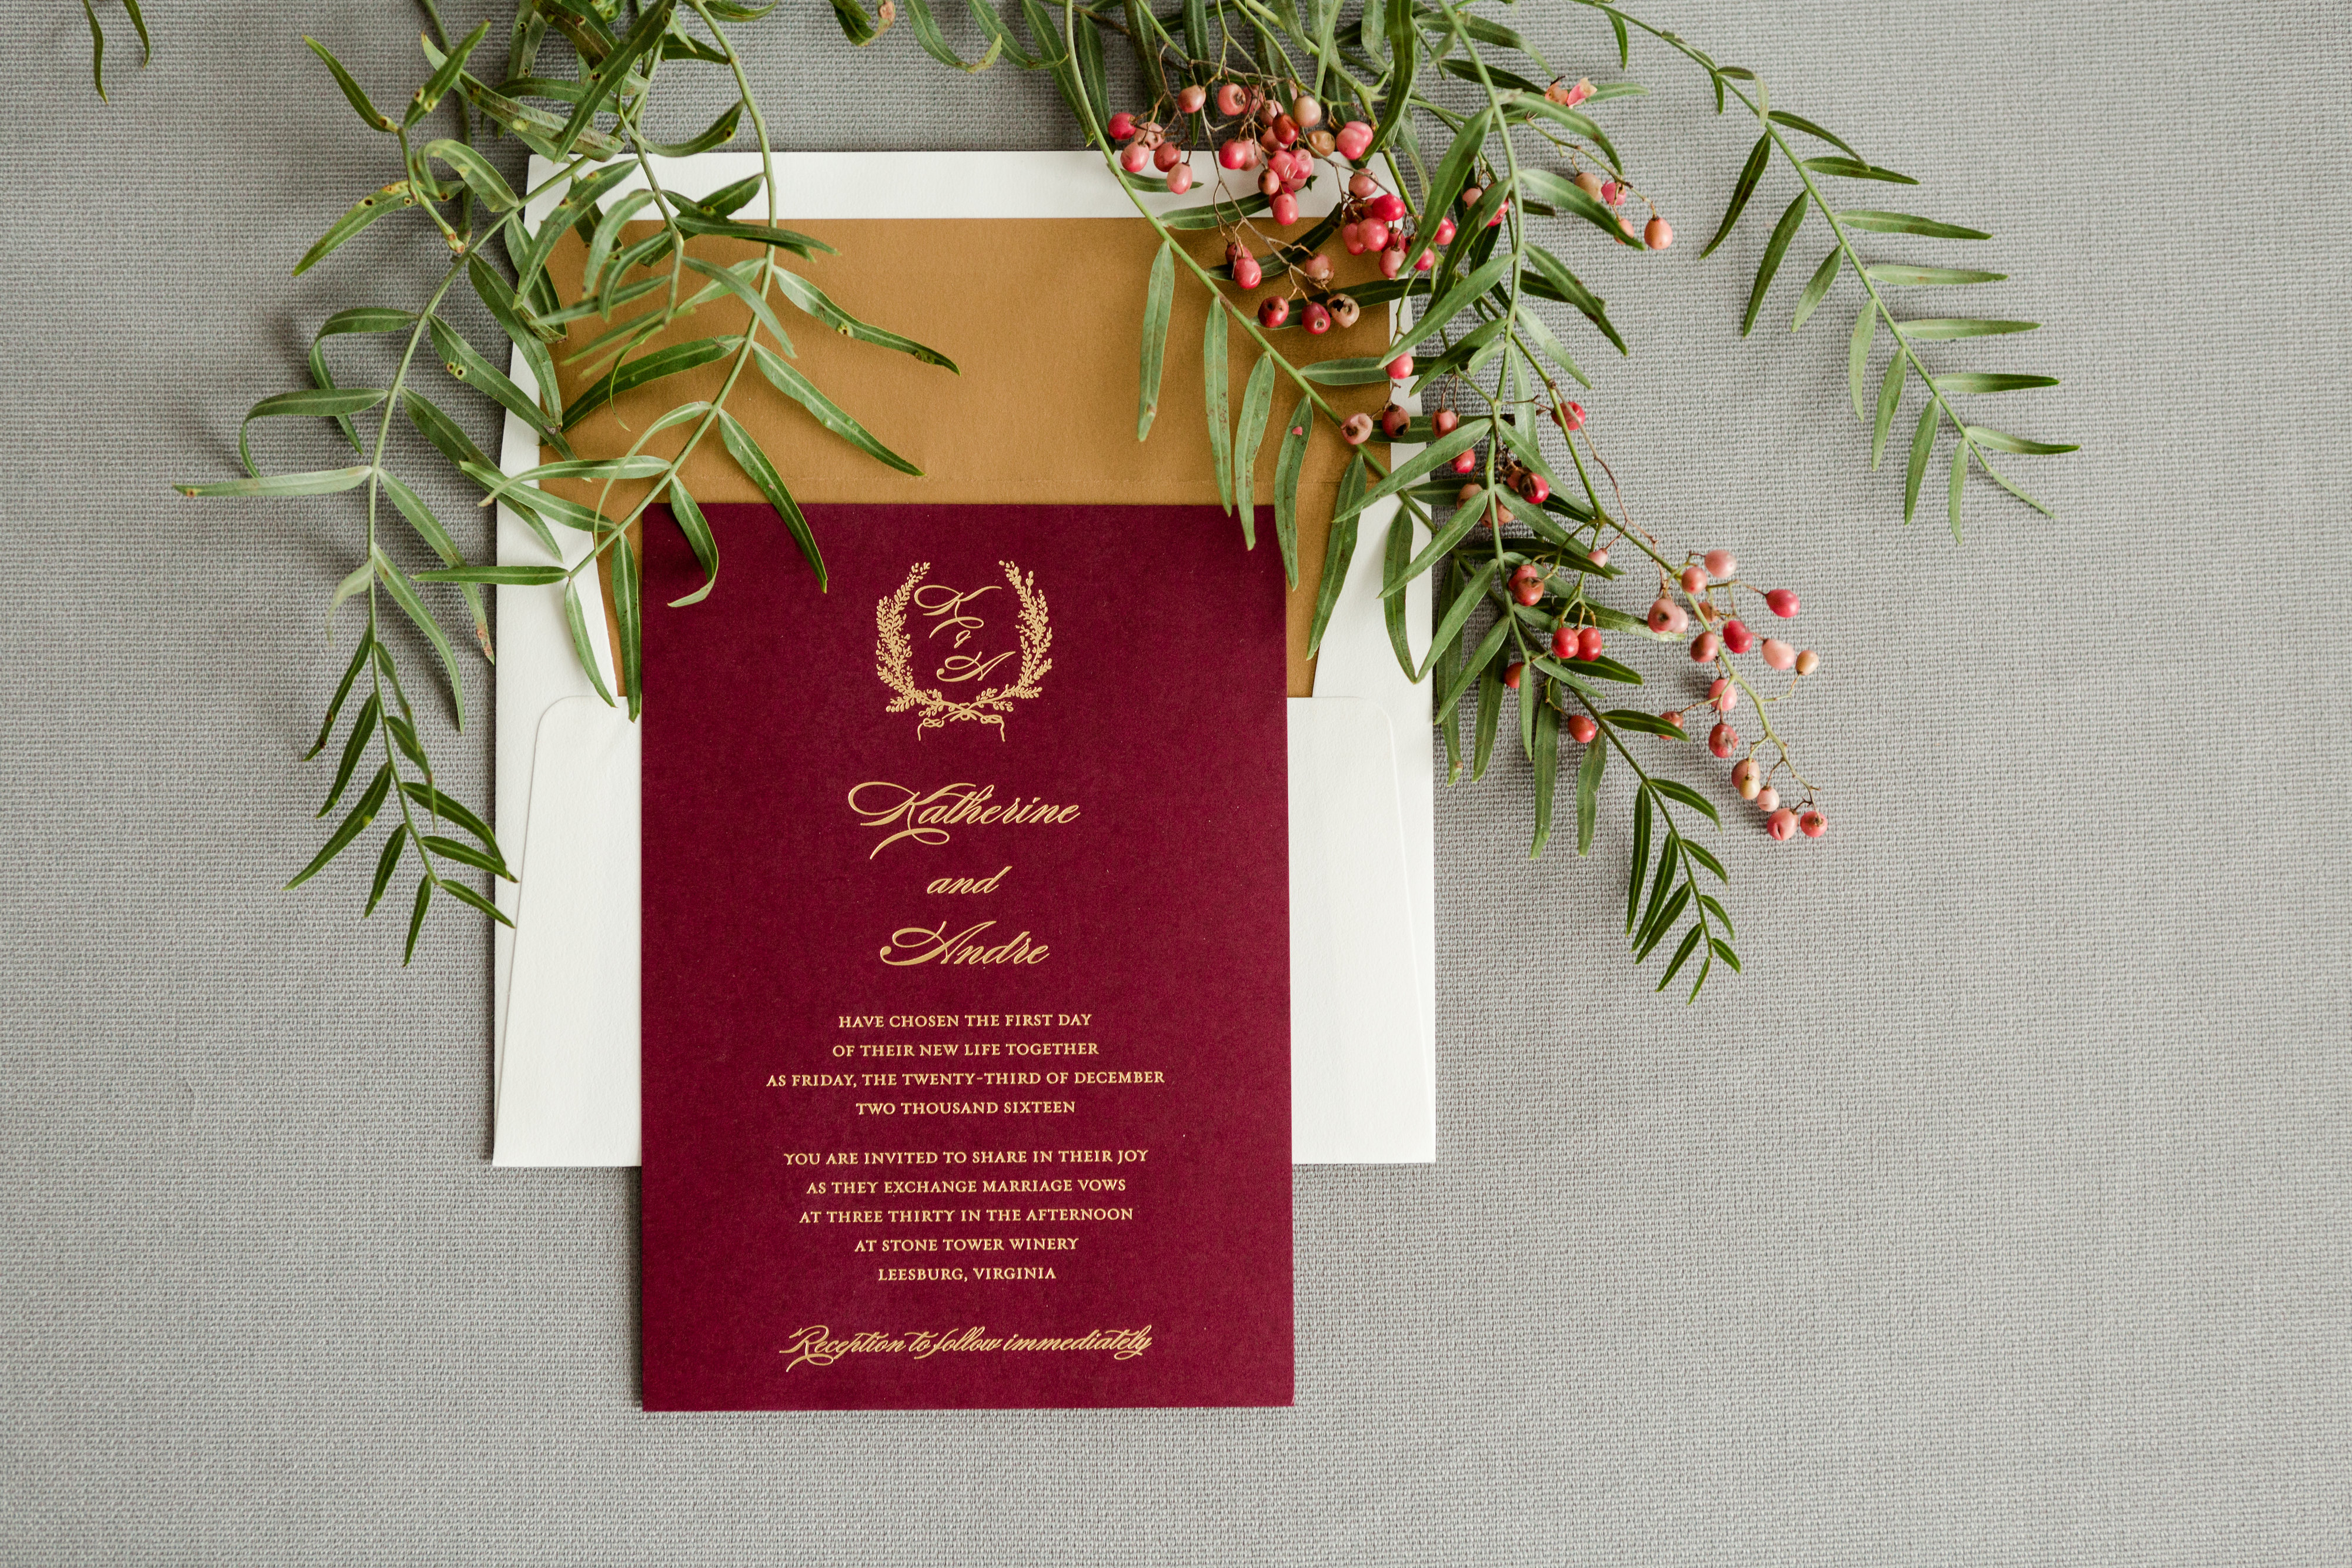 Wine colored invitation with gold foil stamping featuring a laurel monogram